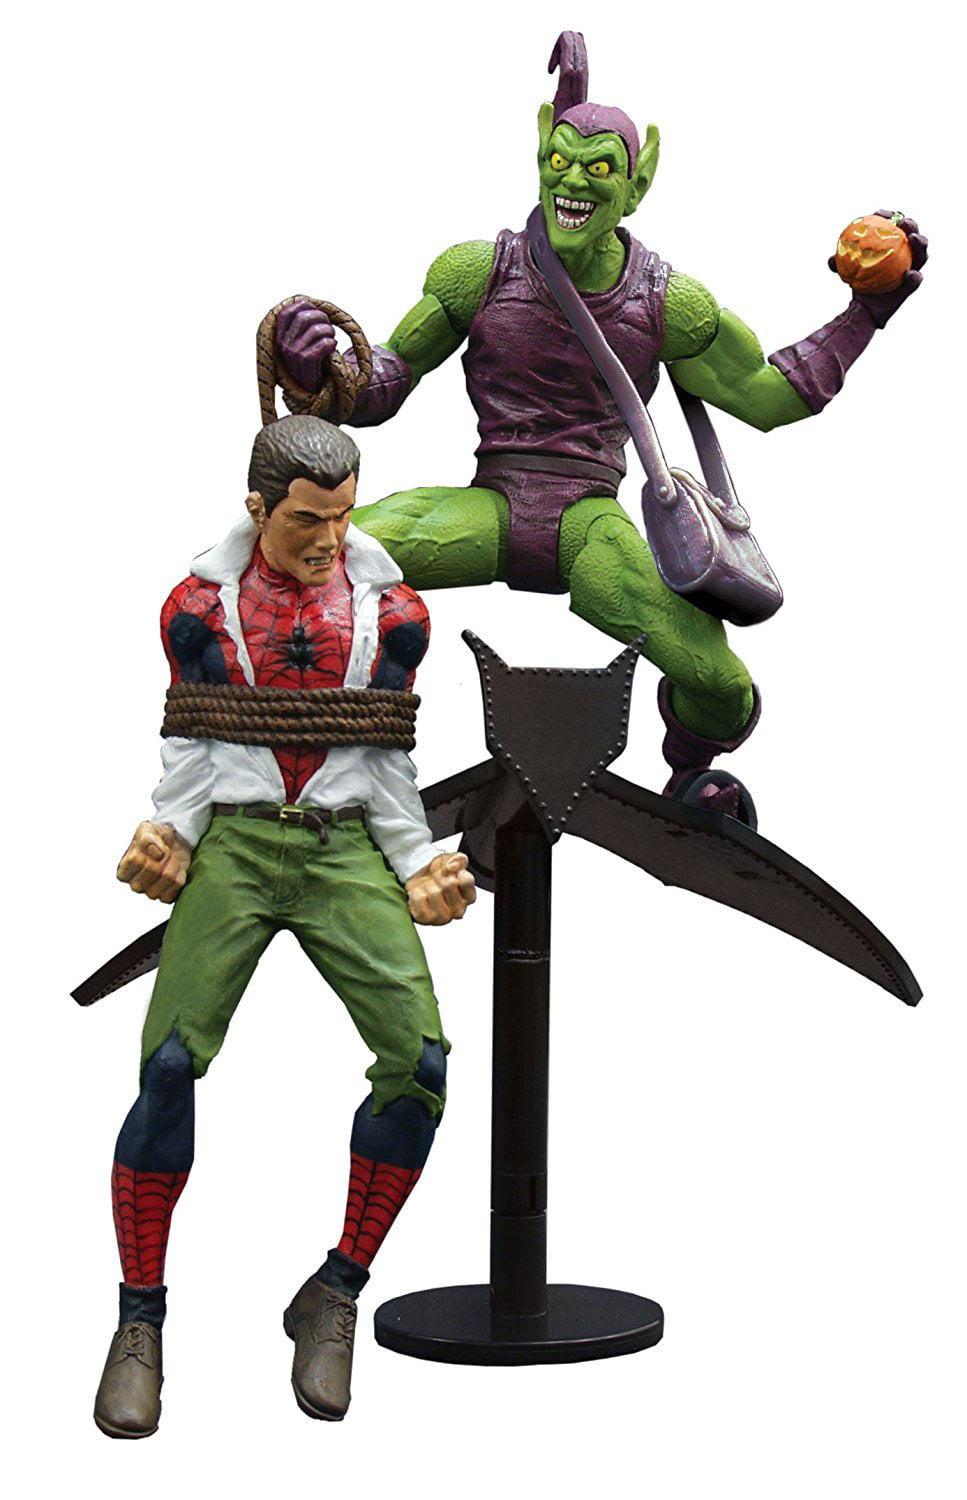 Diamond Select Marvel Select Classic Green Goblin vs Spider-Man by